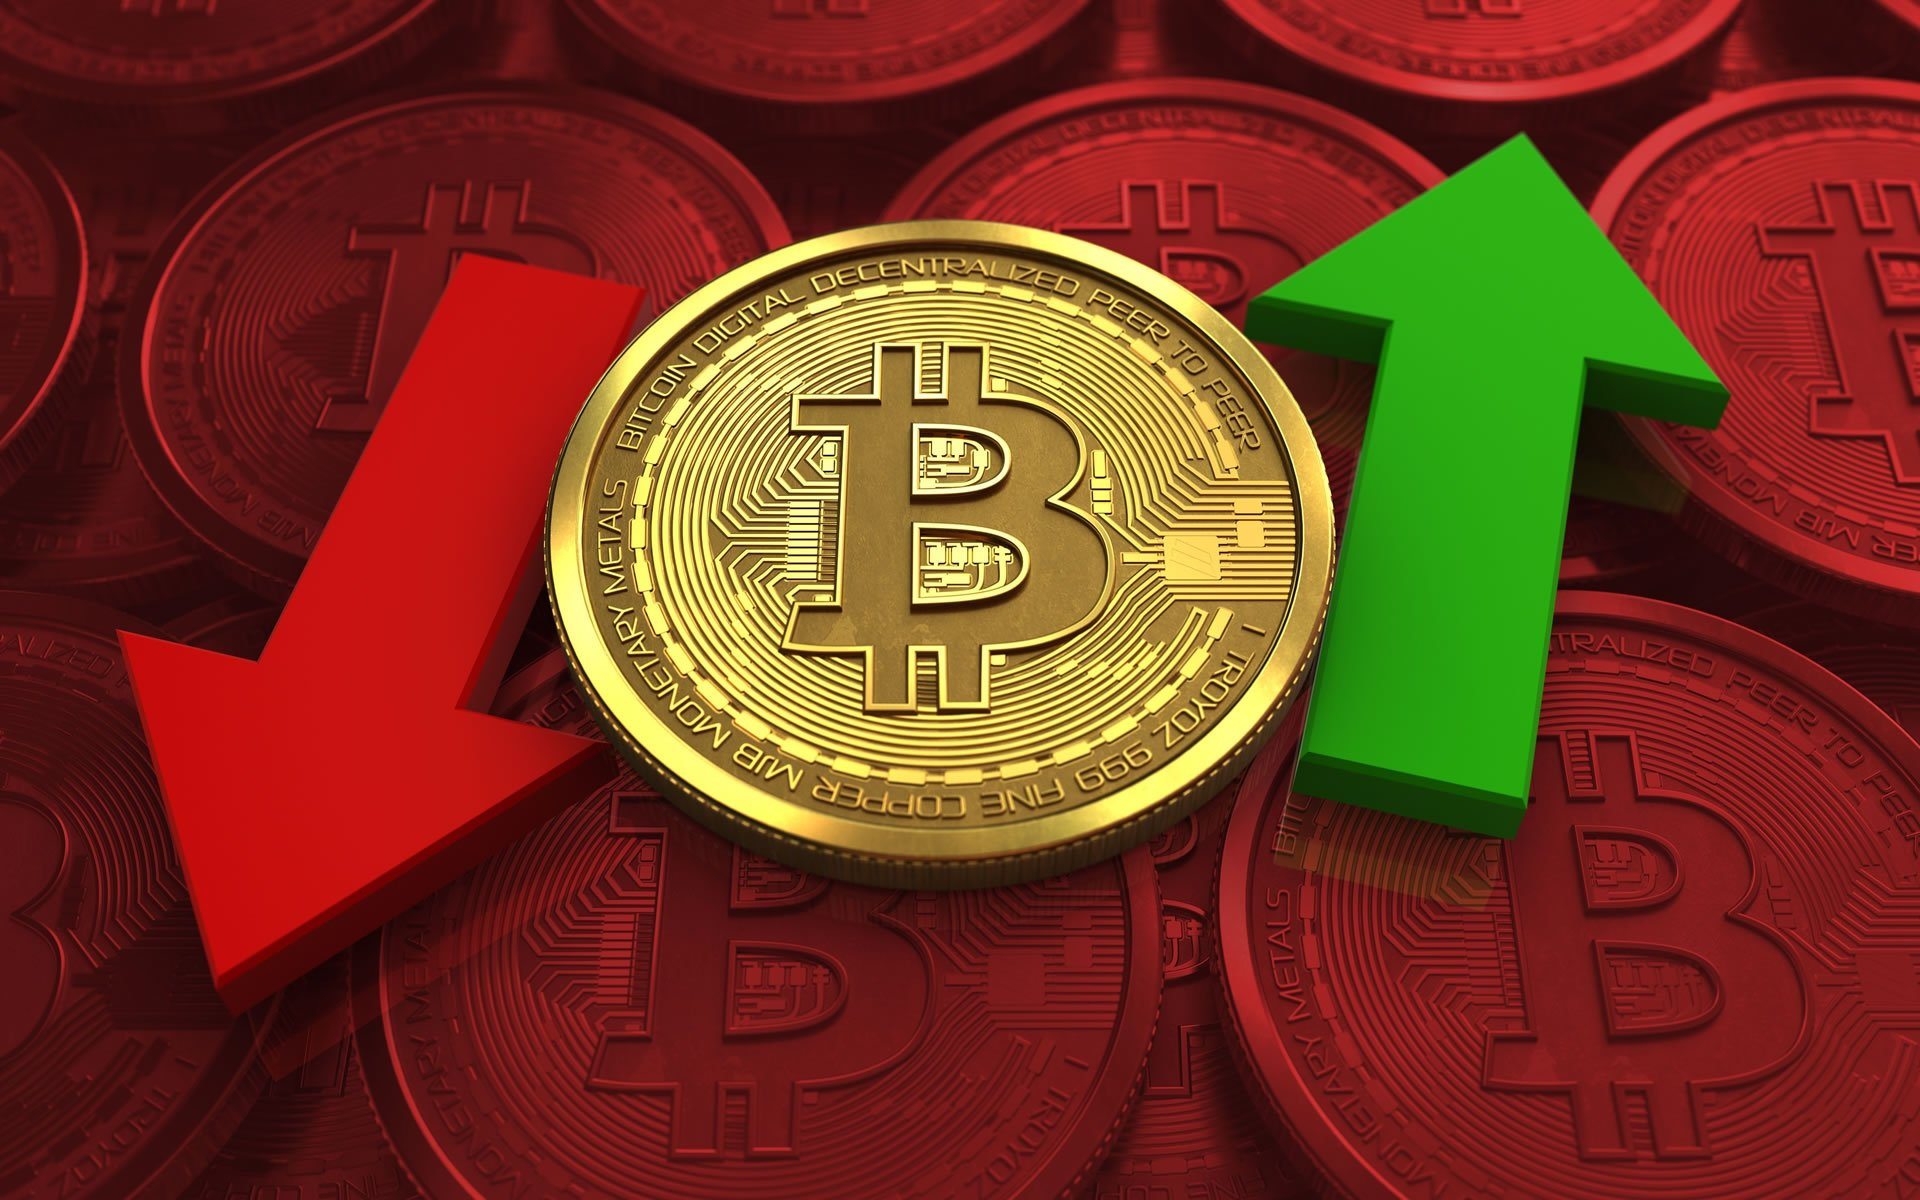 Bitcoin Poised For Another Breakout as It Clings to Support